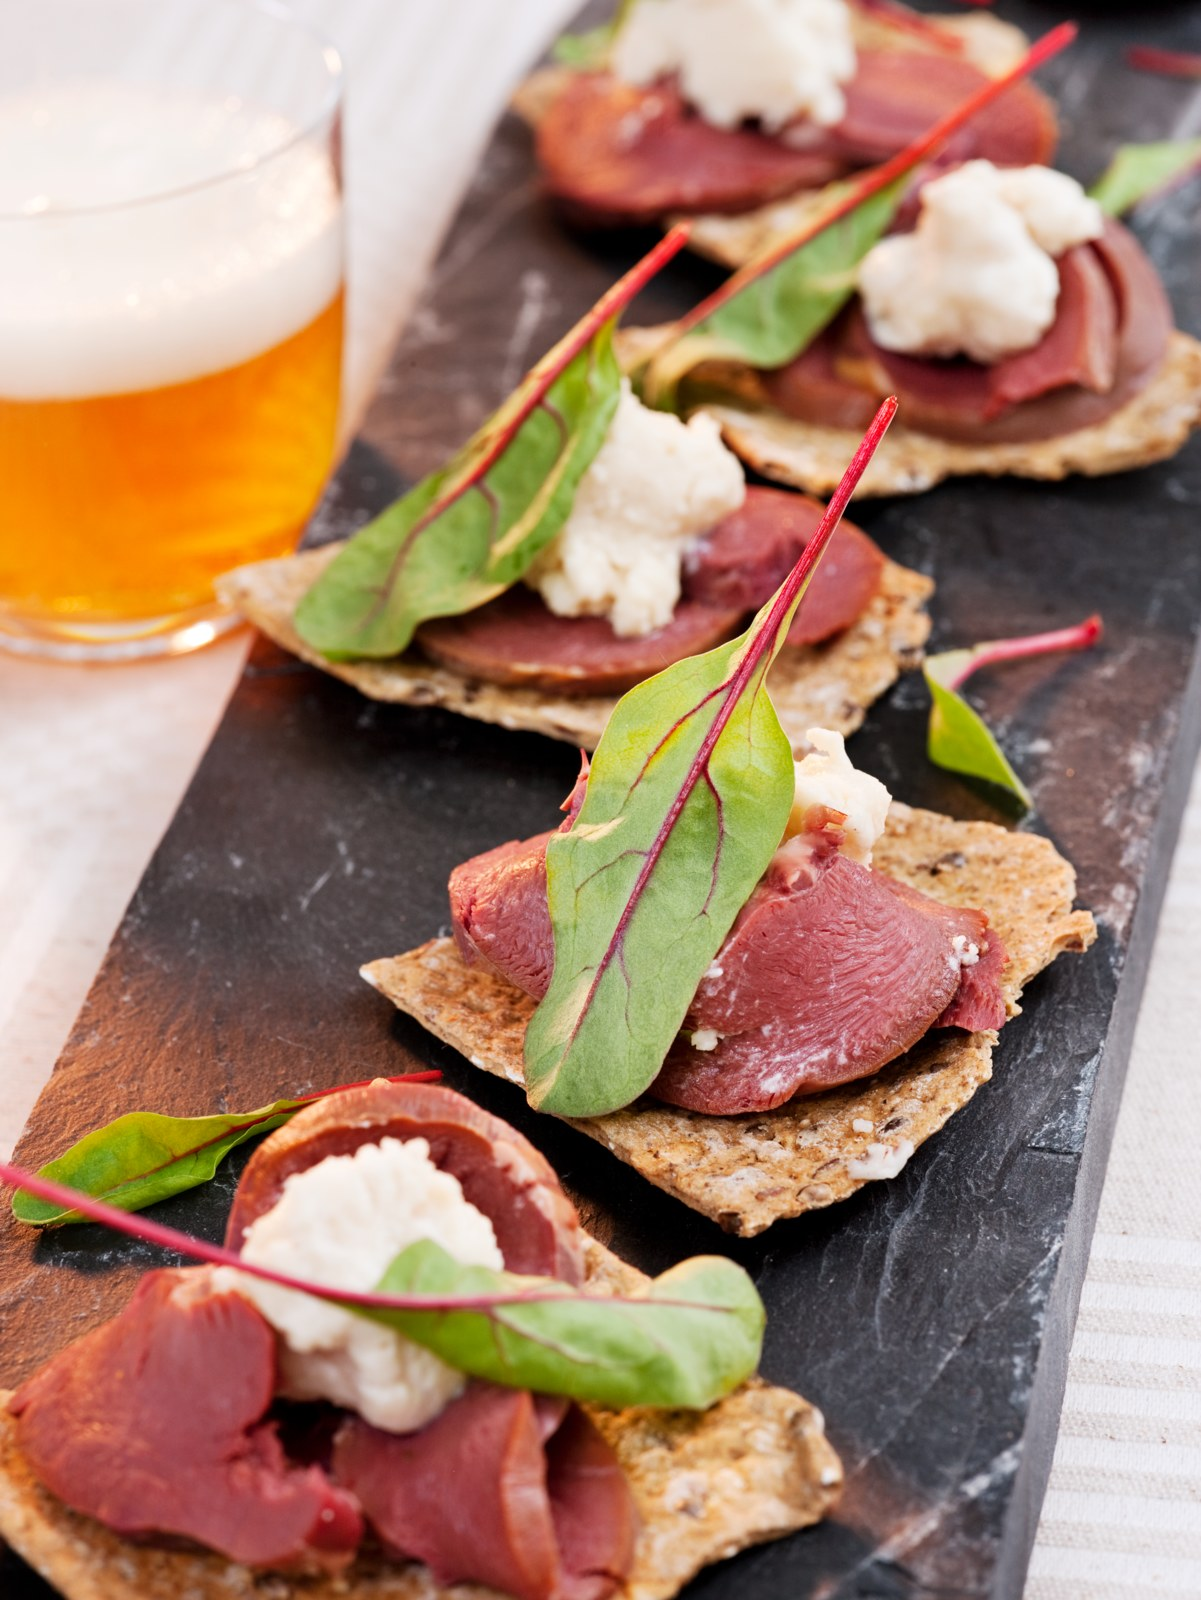 Smoked reindeer heart on flat bread